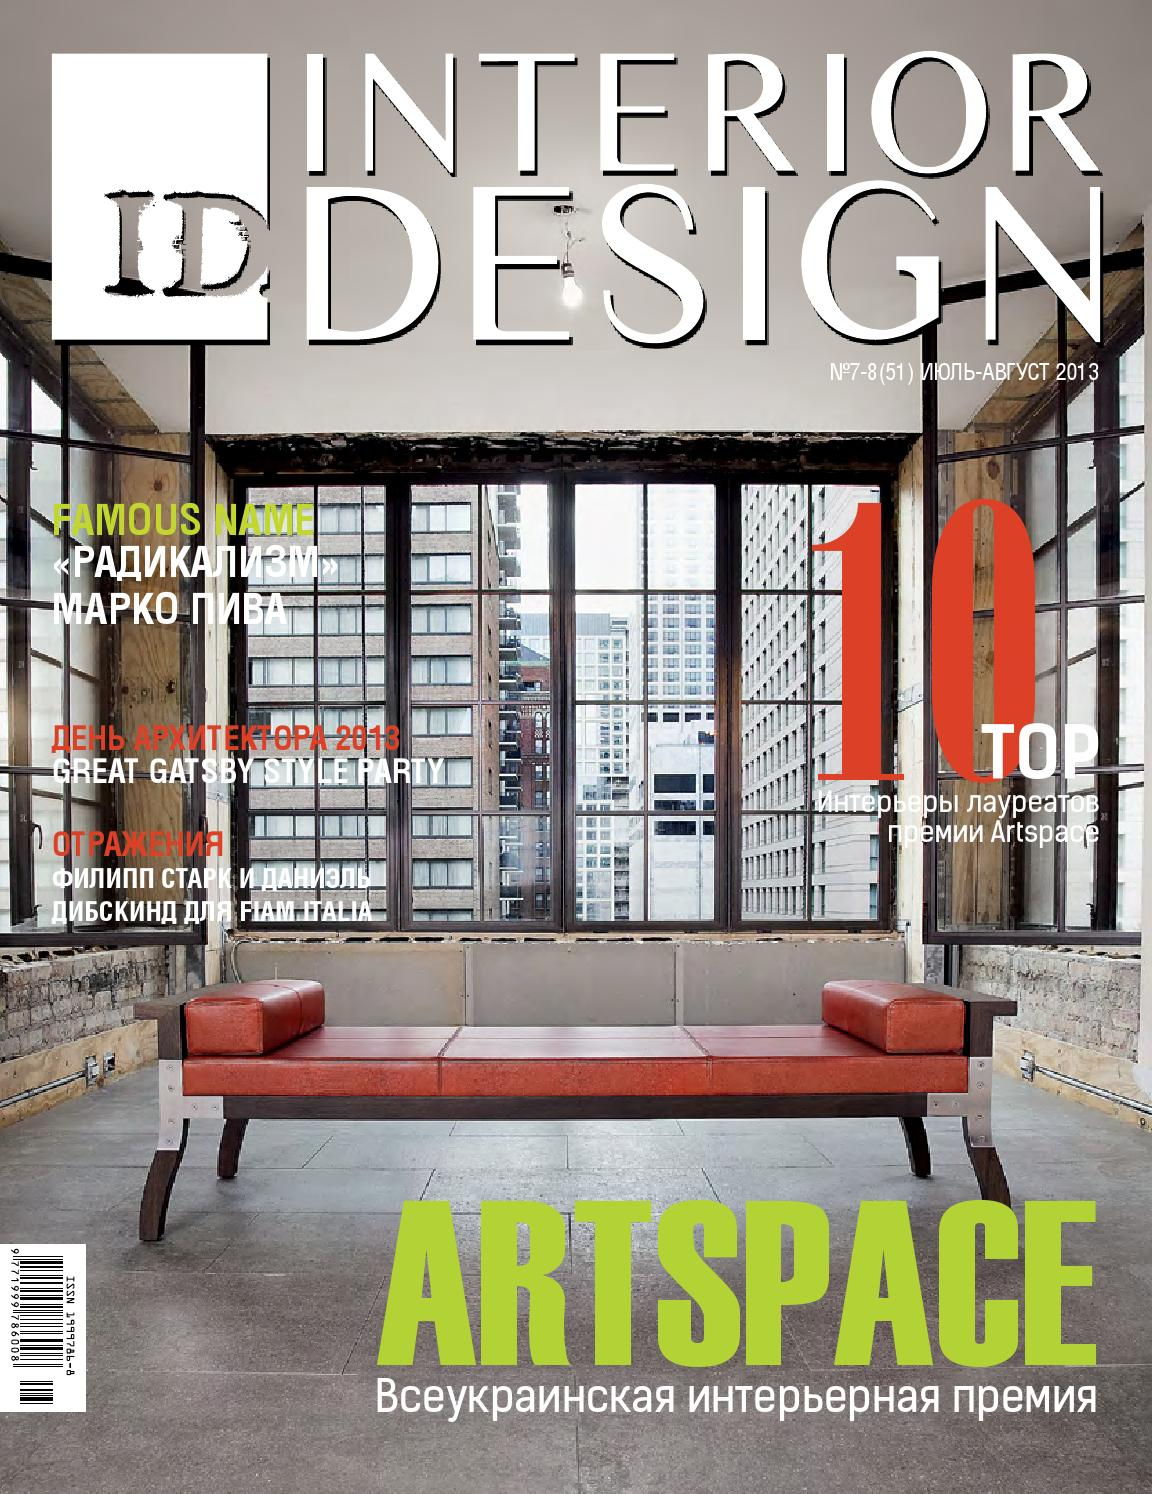 id interior design magazine july august 2013 by id magazine issuu. Black Bedroom Furniture Sets. Home Design Ideas